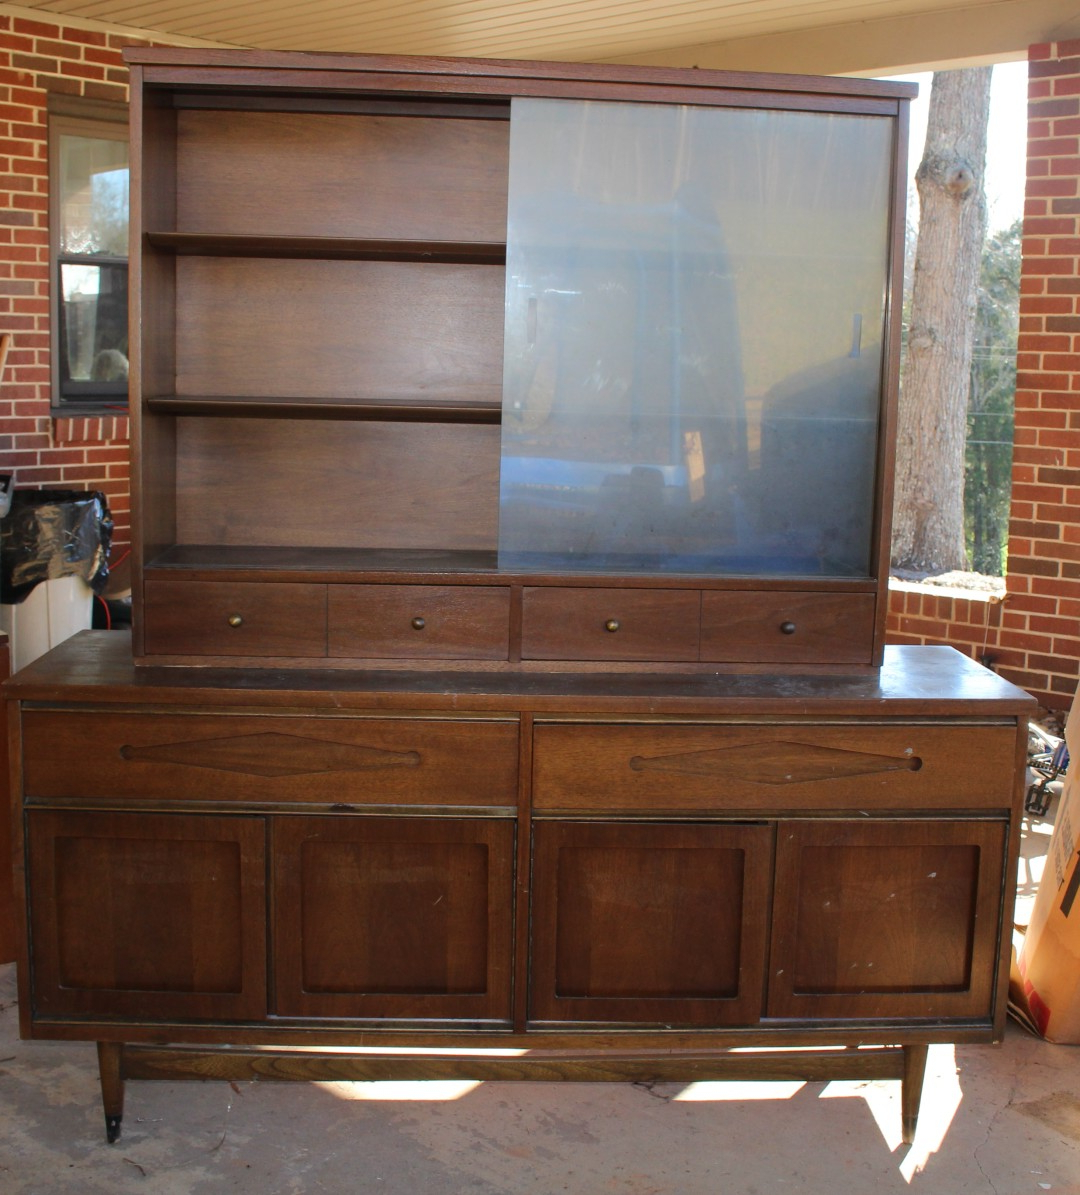 Mid Century Buffet Remodel – The Unextreme In Mid Century Buffets (View 13 of 20)